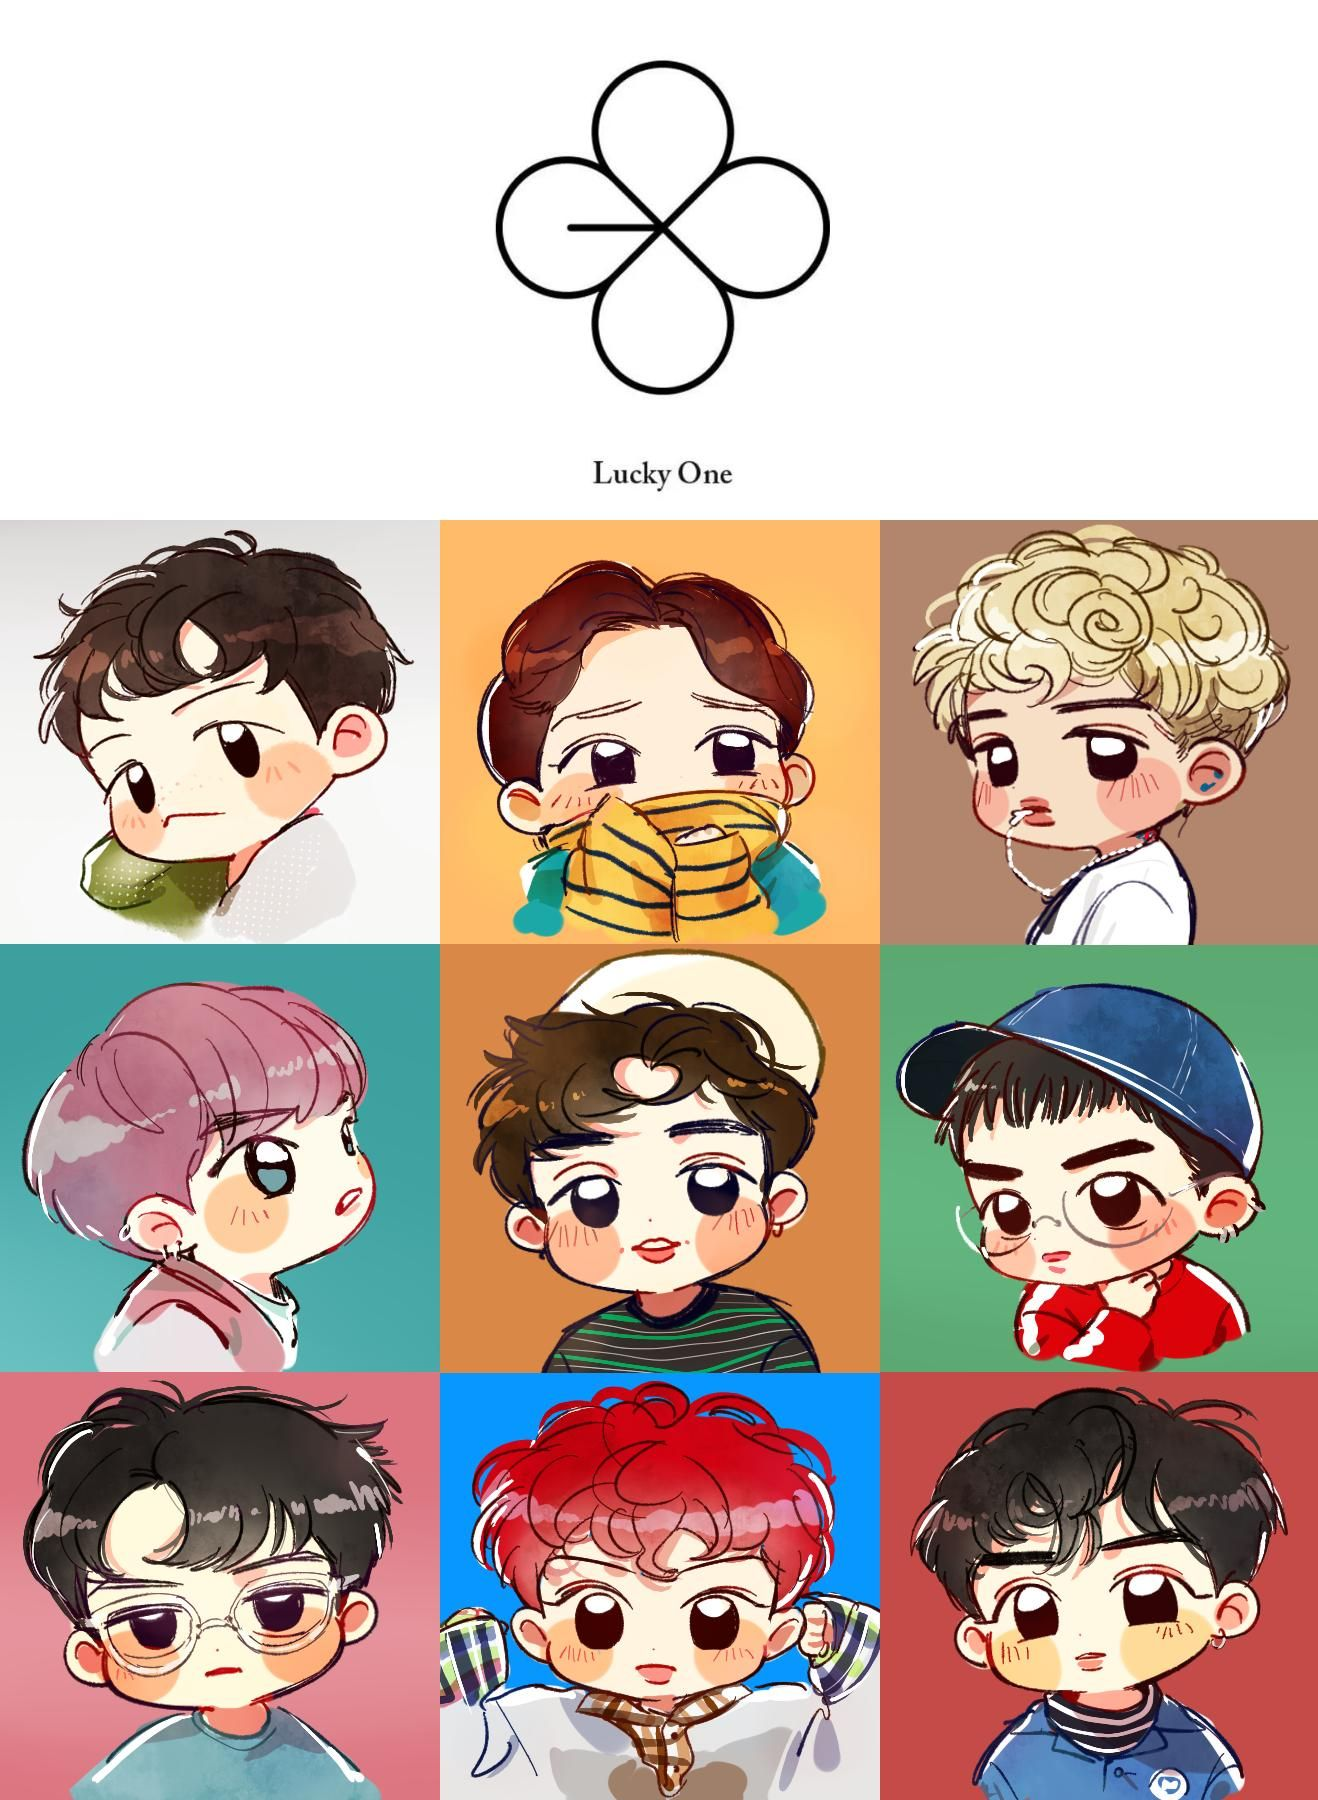 Pin by Pam on Fanart Pinterest Exo, Kpop and Exo members